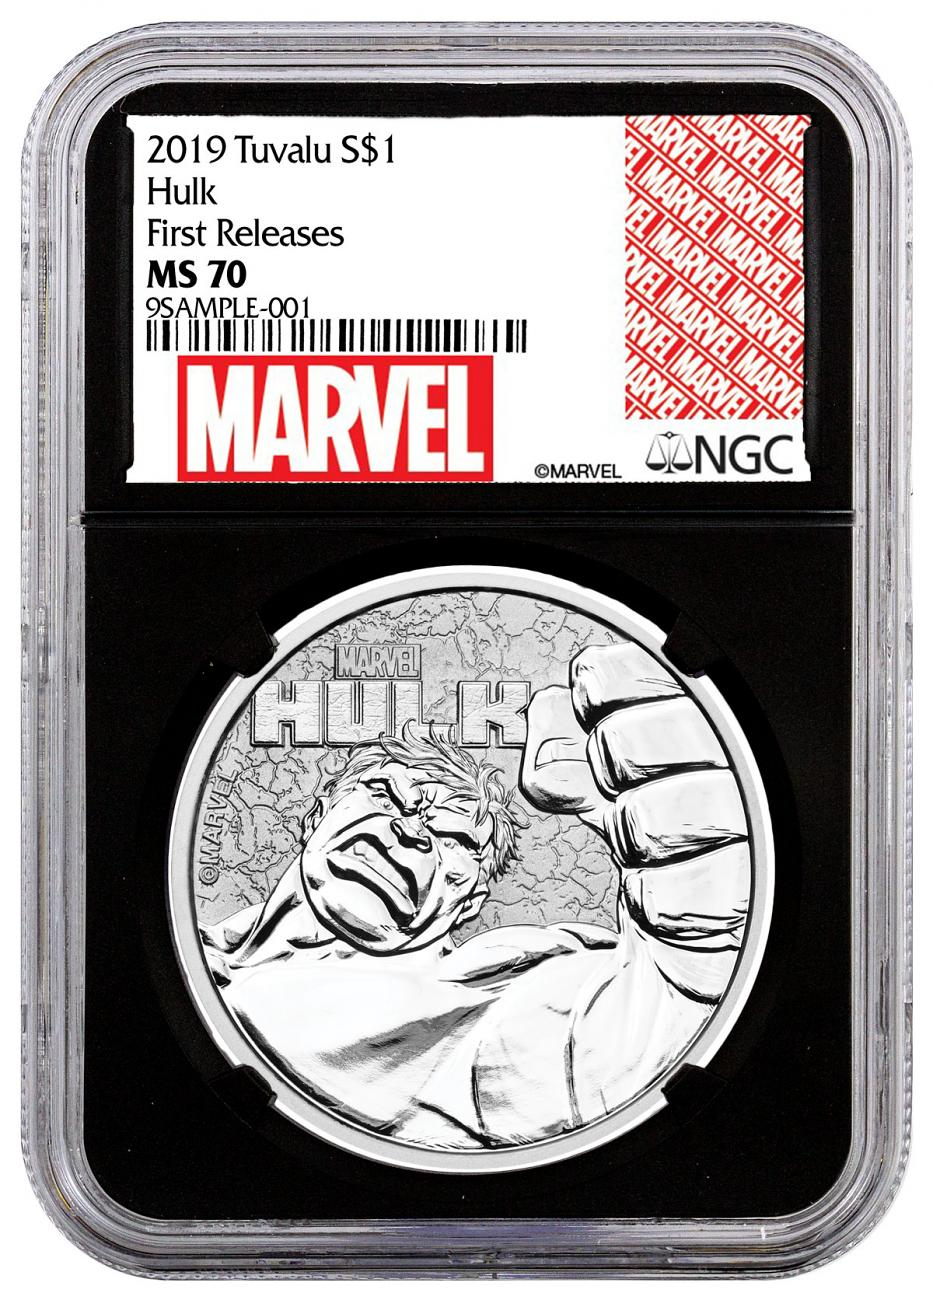 2019 Tuvalu Hulk 1 oz Silver Marvel Series $1 Coin NGC MS70 FR Black Core Holder Marvel Series Label